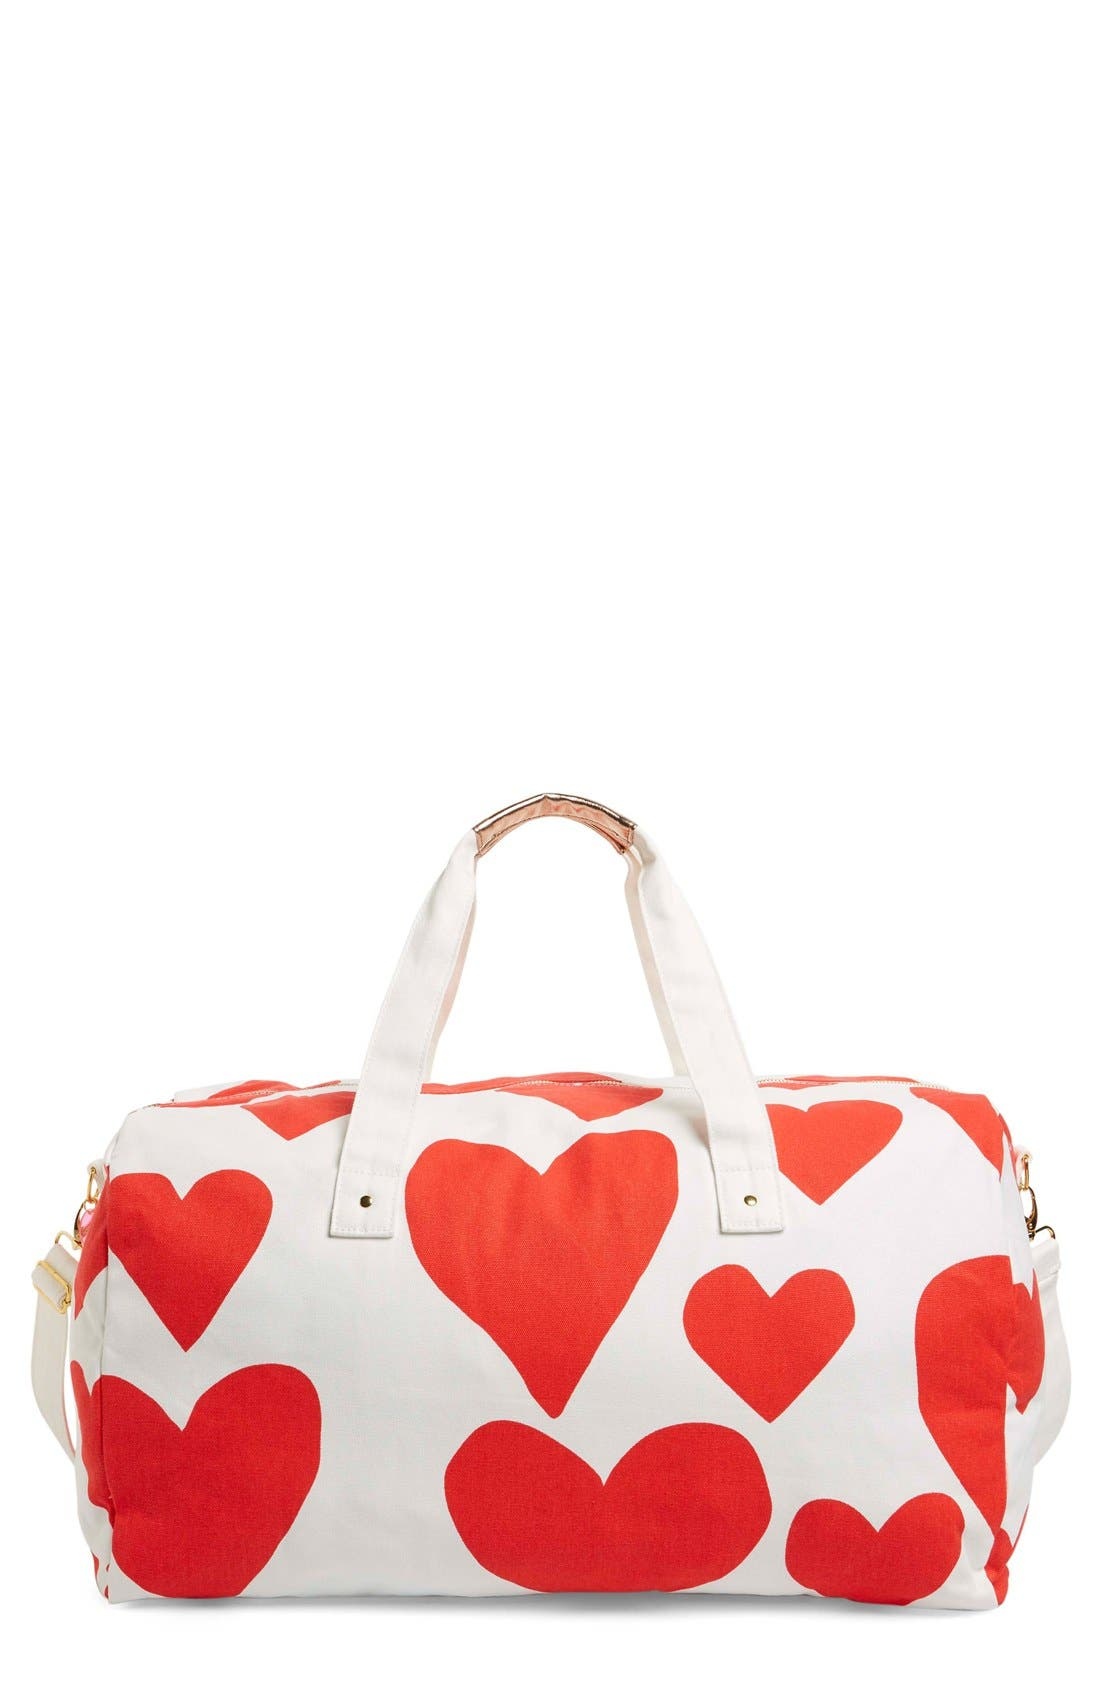 Alternate Image 1 Selected - ban.do 'Extreme Hearts' Canvas Duffel Bag